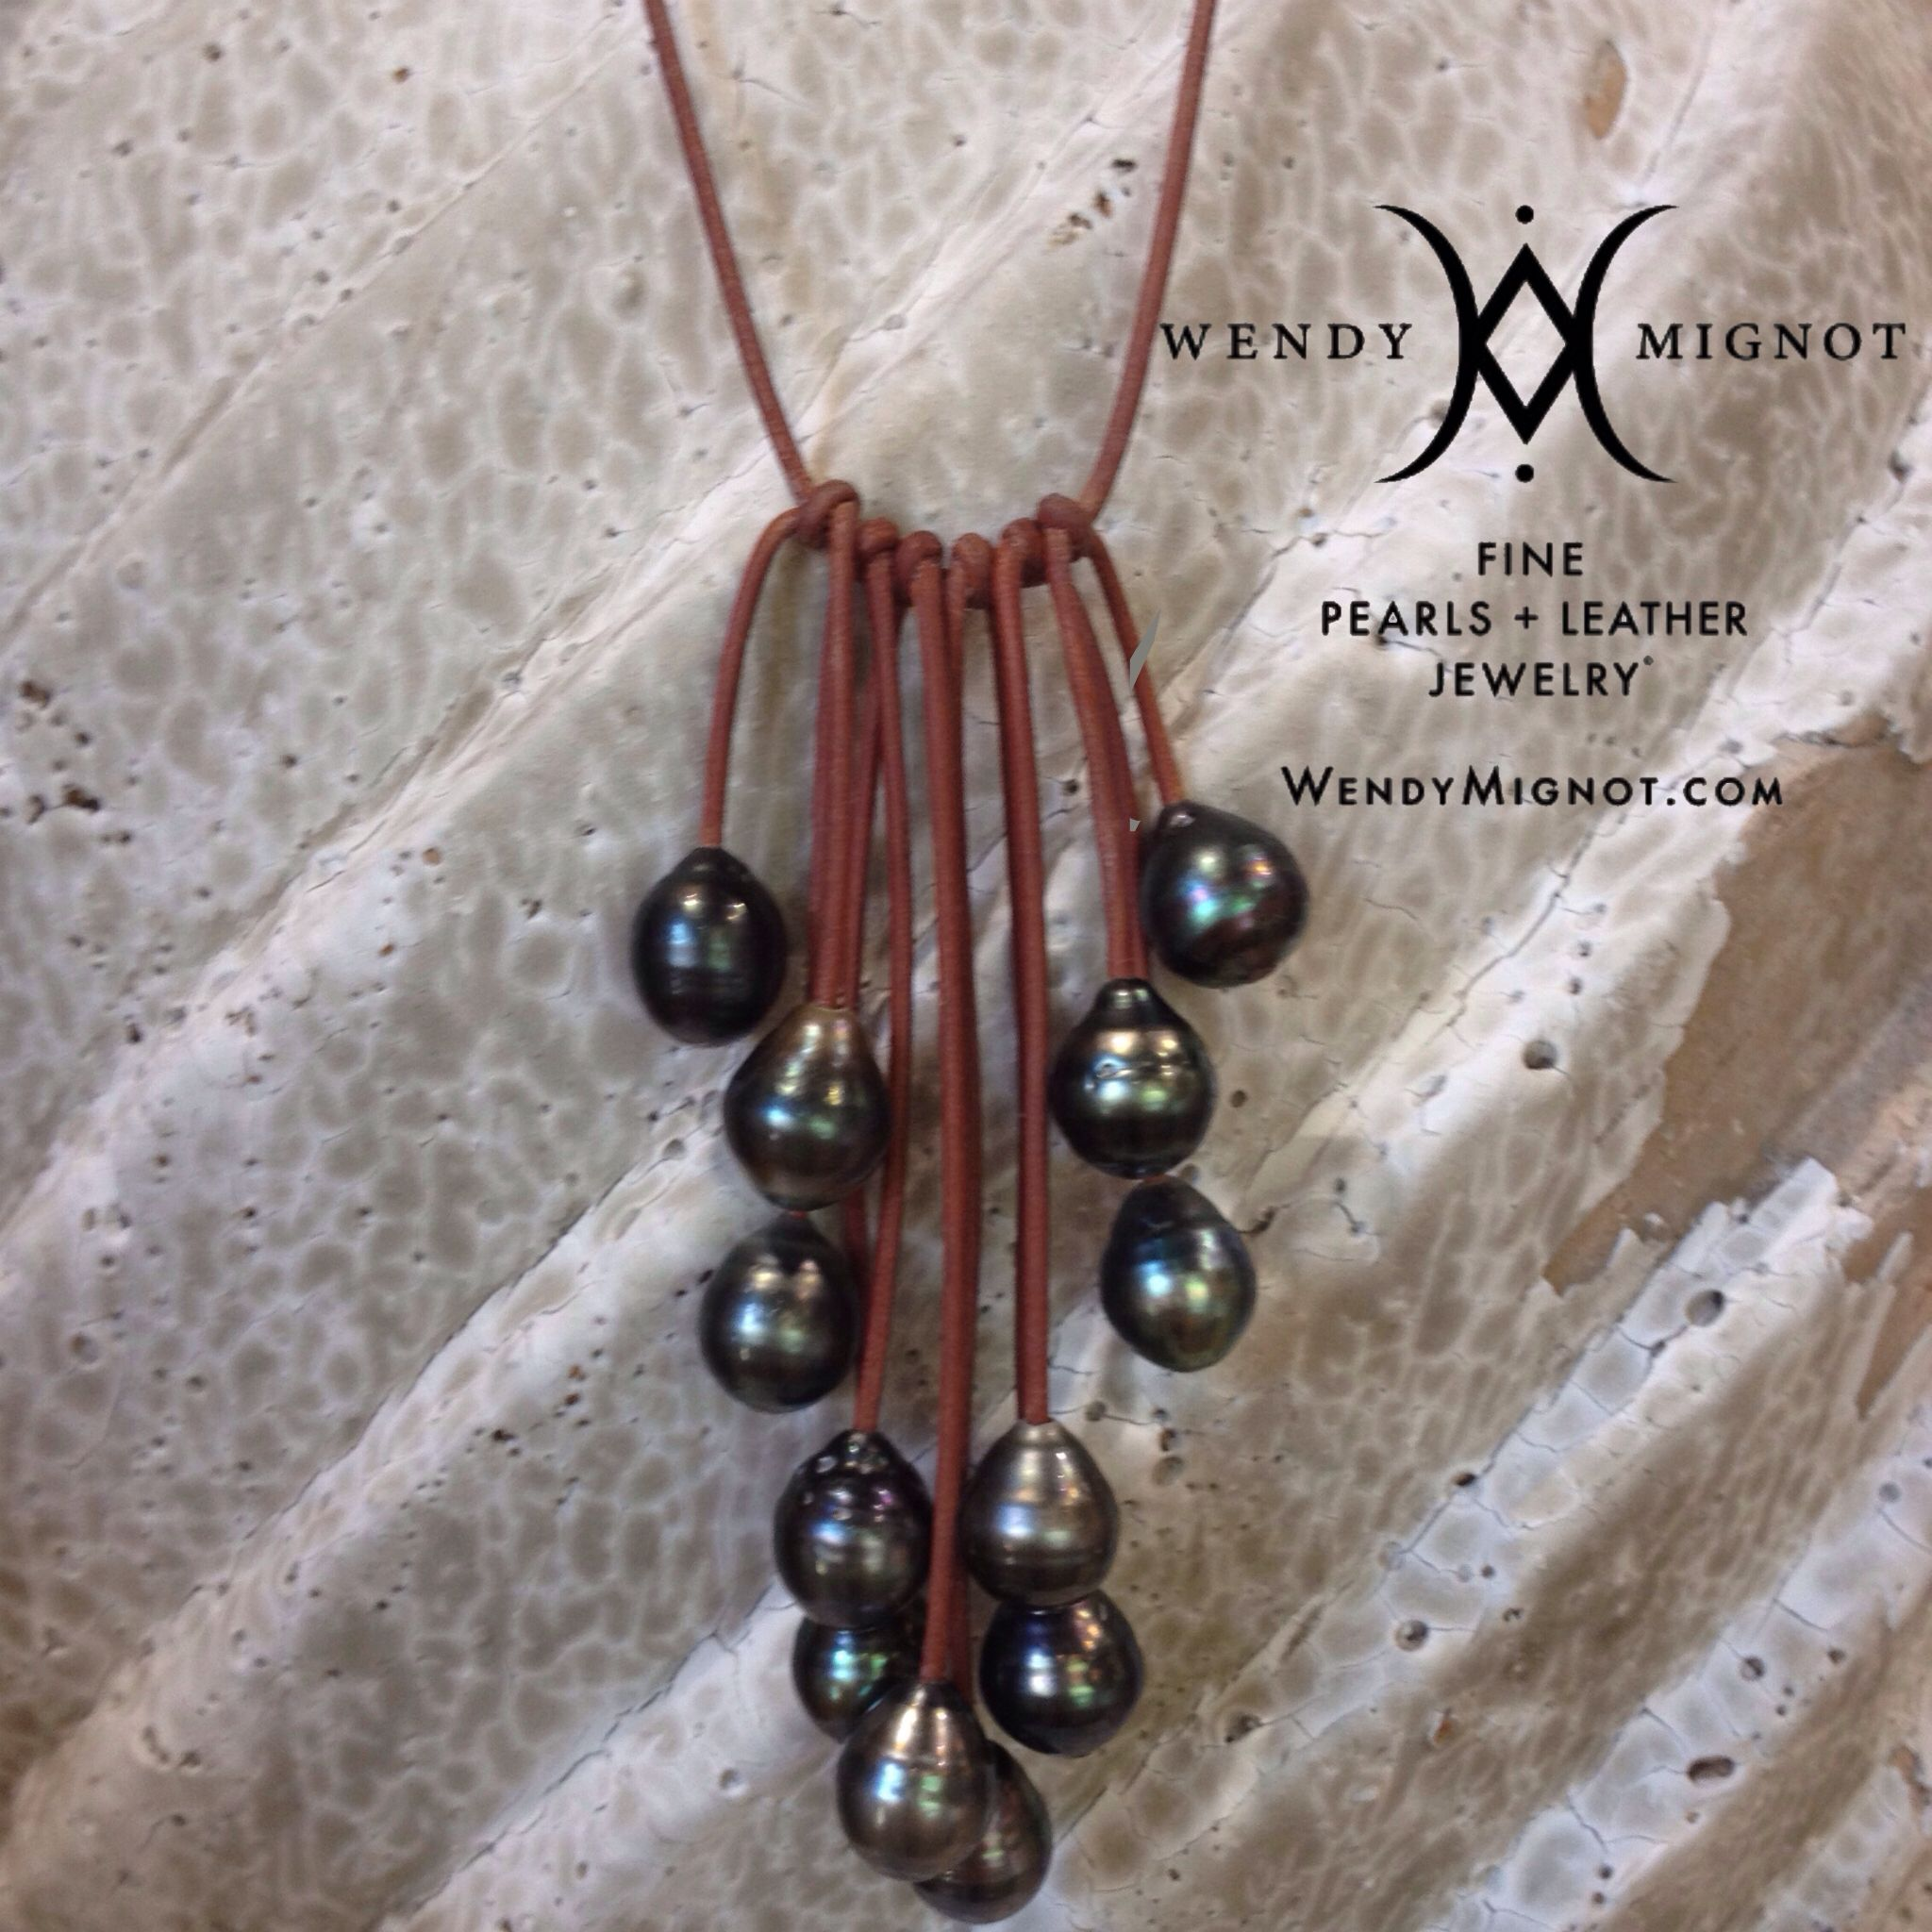 37+ Pearl and leather jewelry seaside florida viral